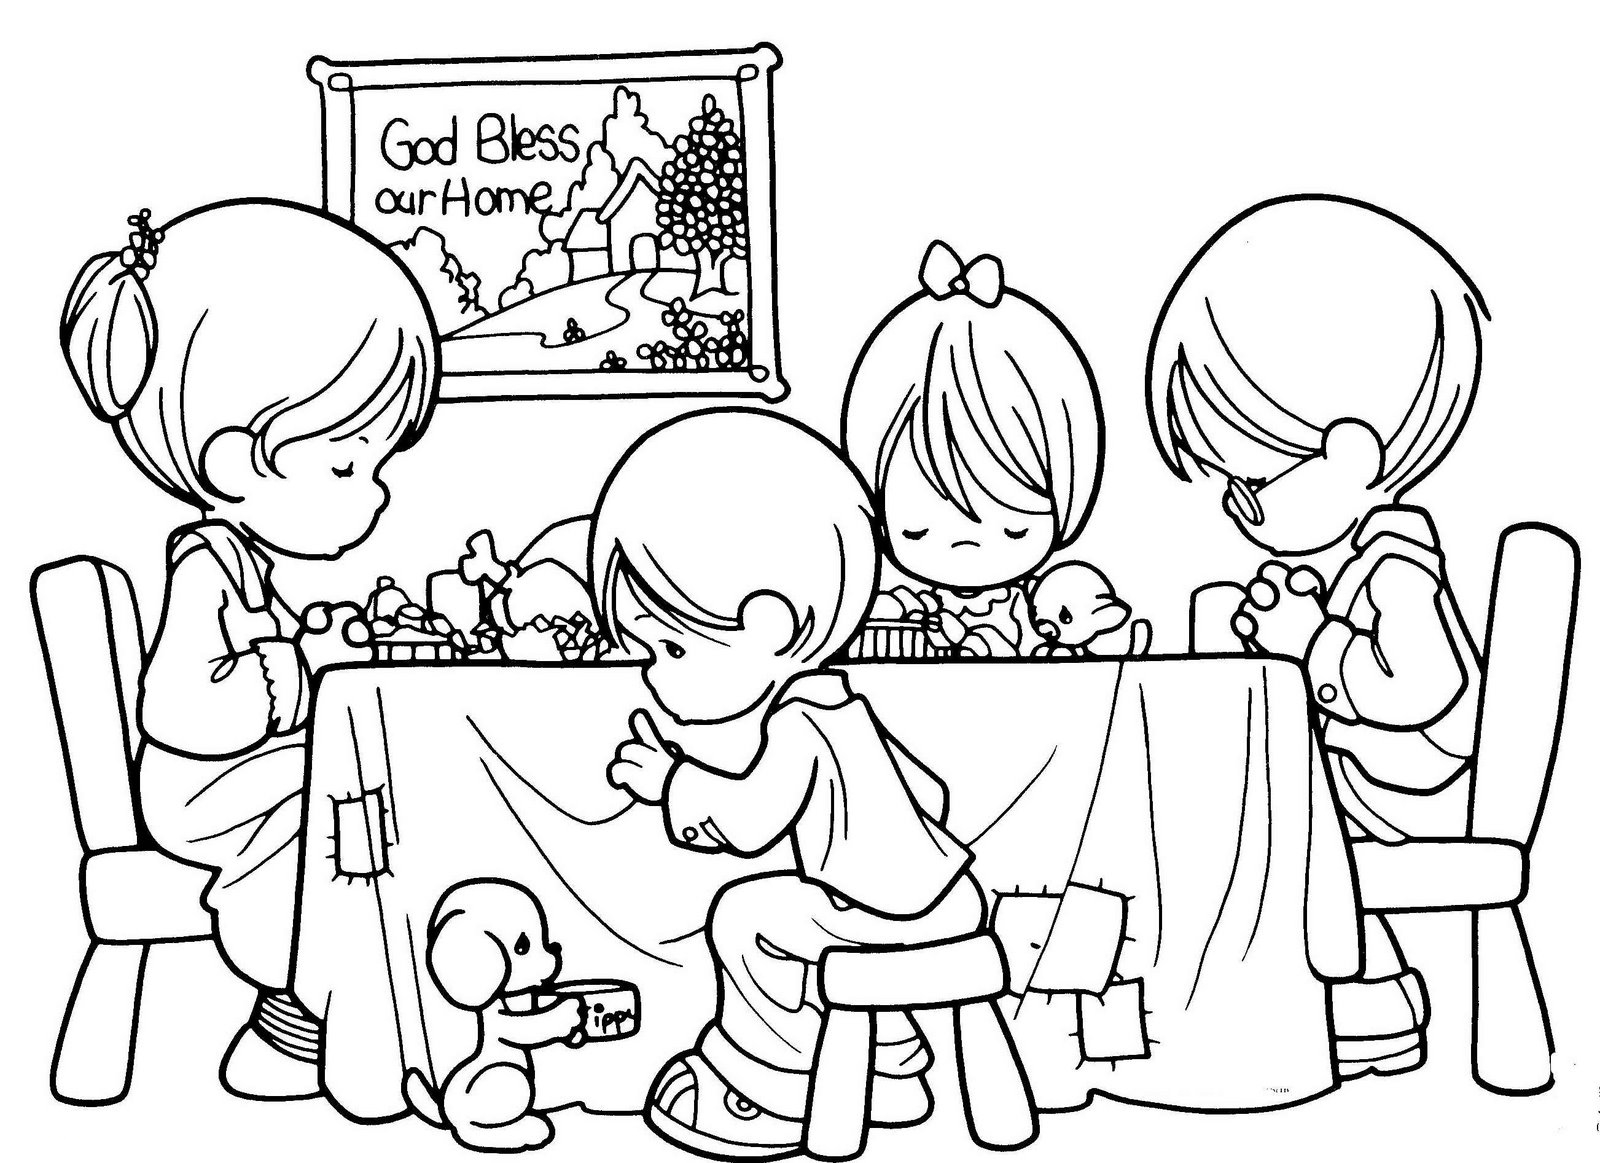 Christian Coloring Pages Amusing Free Printable Christian Coloring Pages For Kids  Best Coloring .